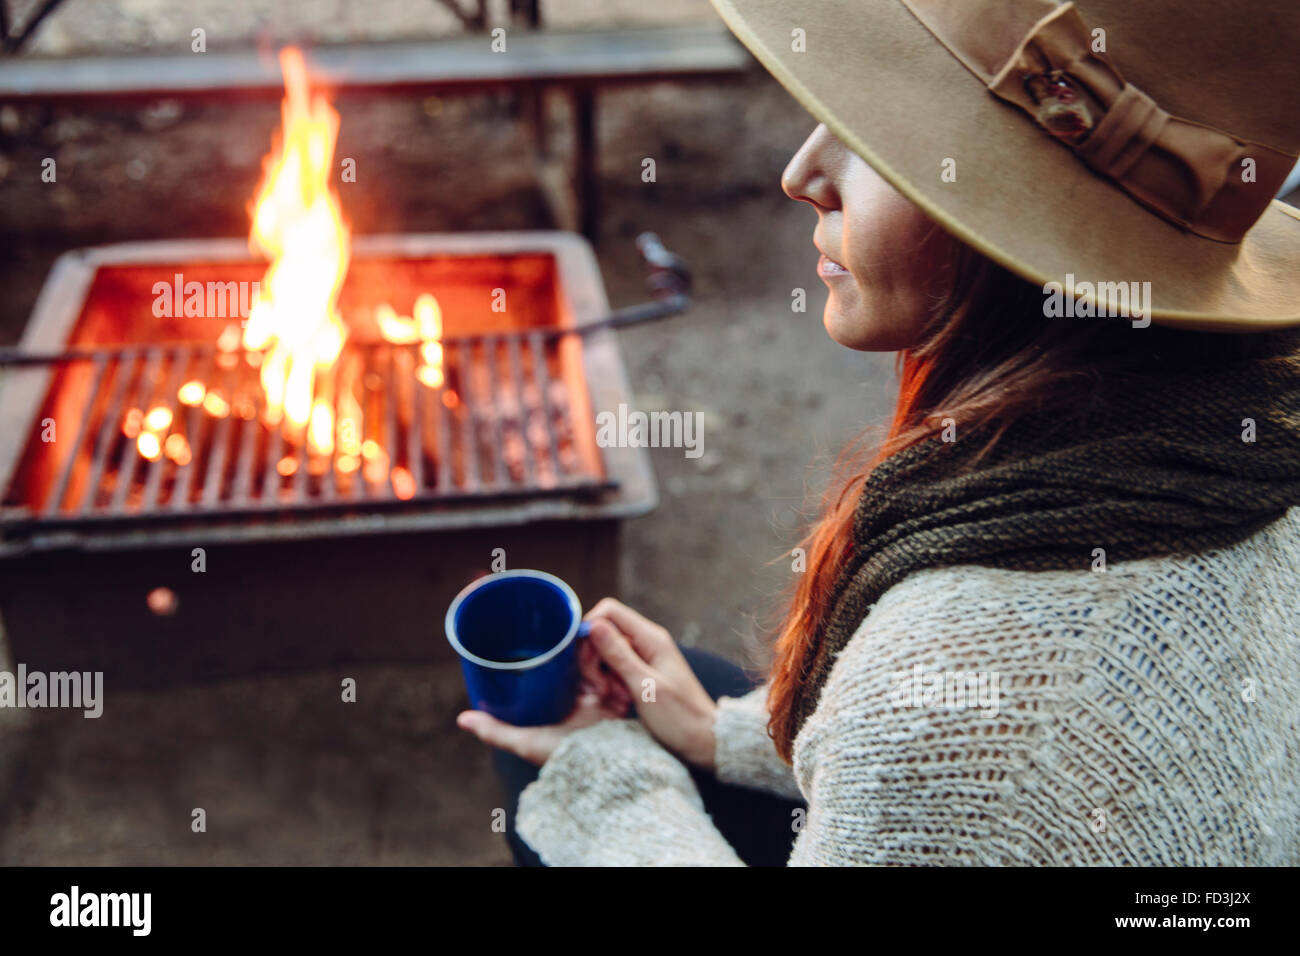 Woman enjoys a campfire moment with coffee mug - Stock Image